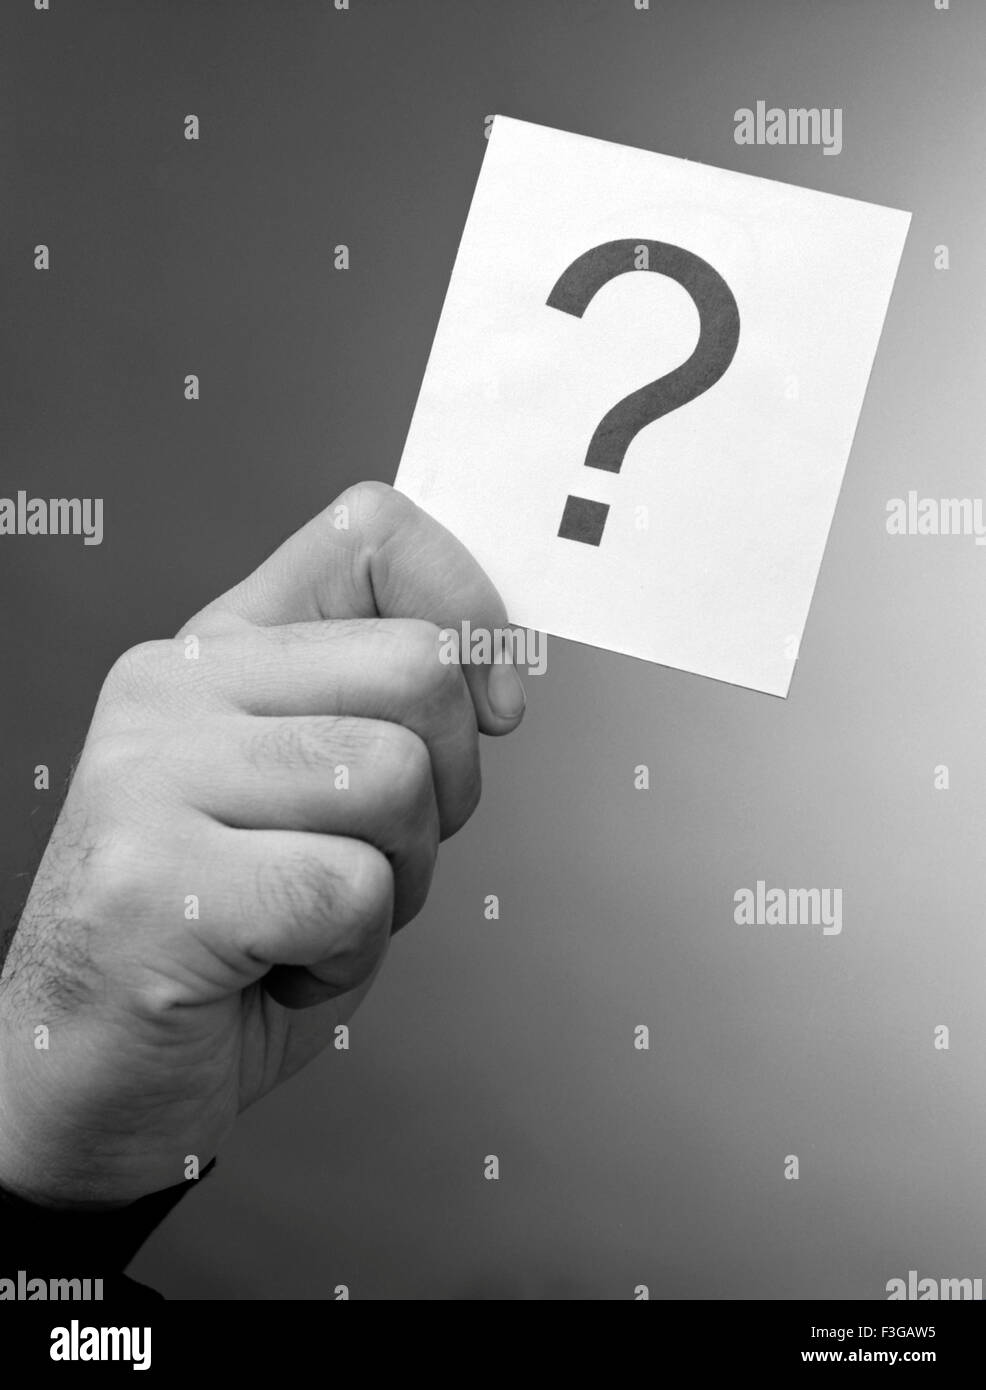 Hand & question mark - Stock Image